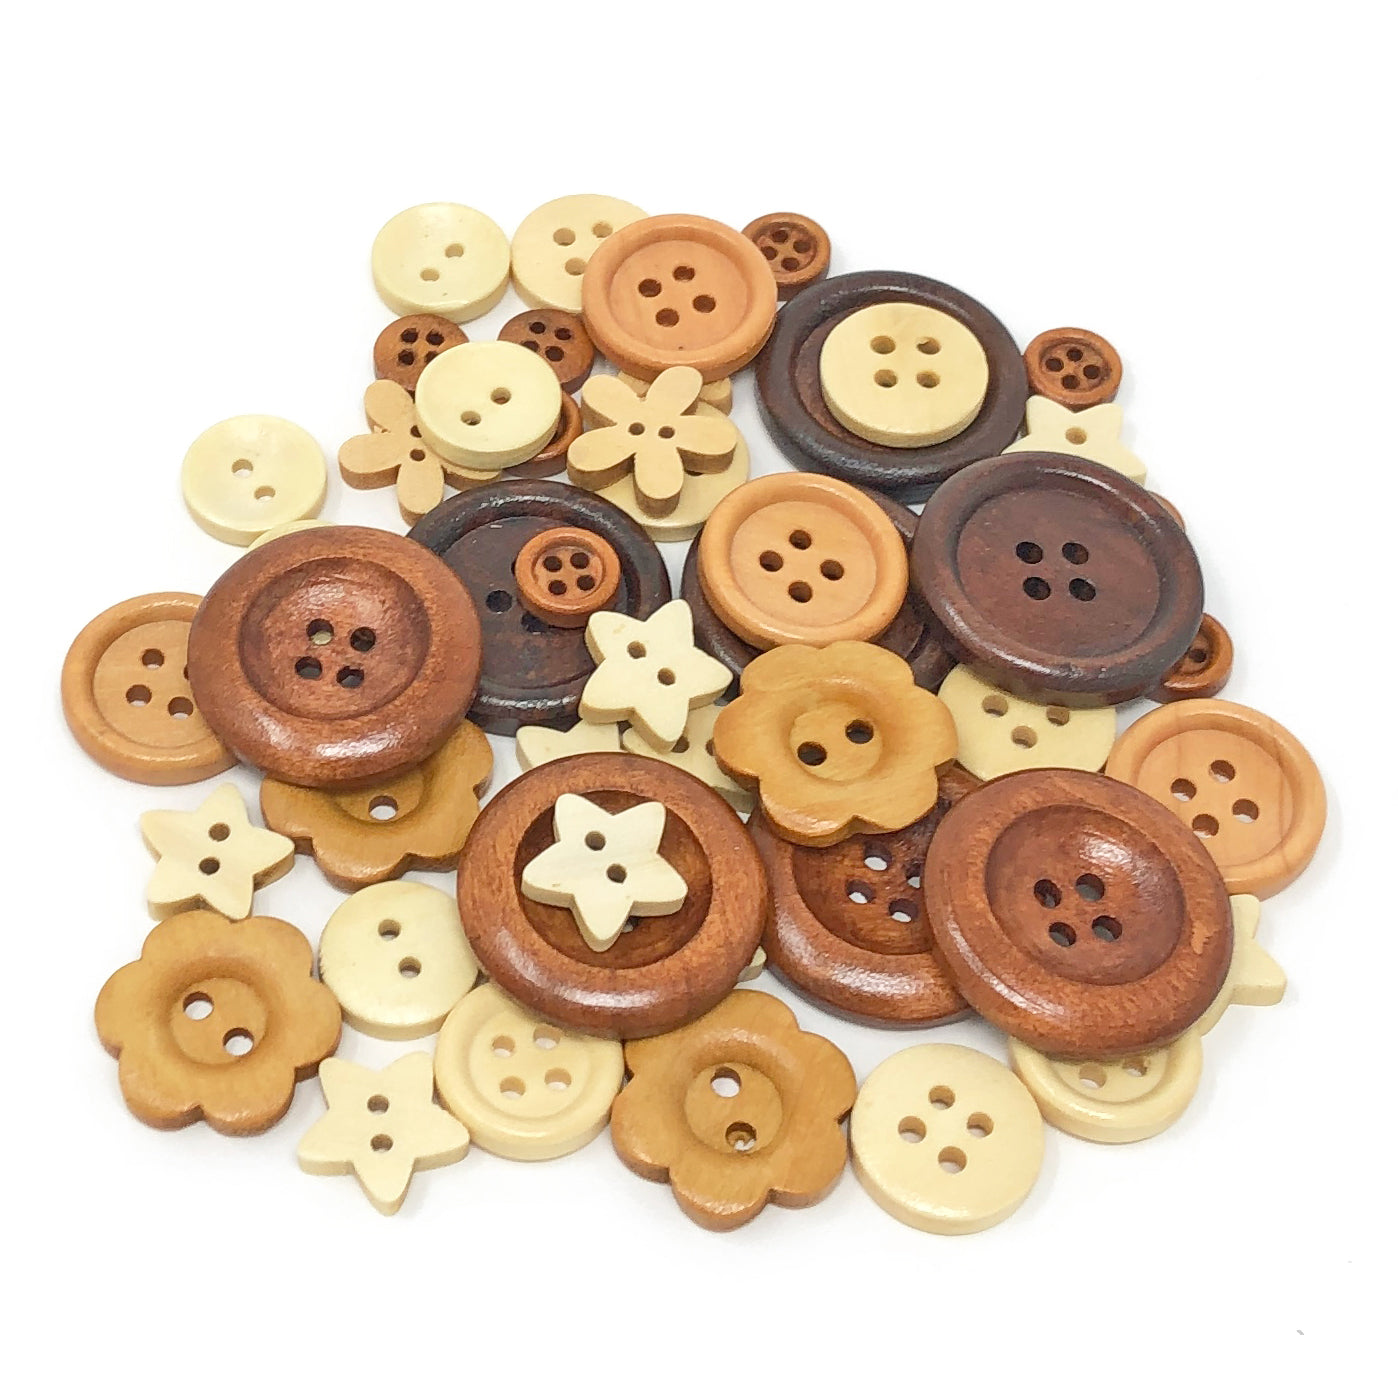 50 Mix Natural Shabby Chic Wood Buttons